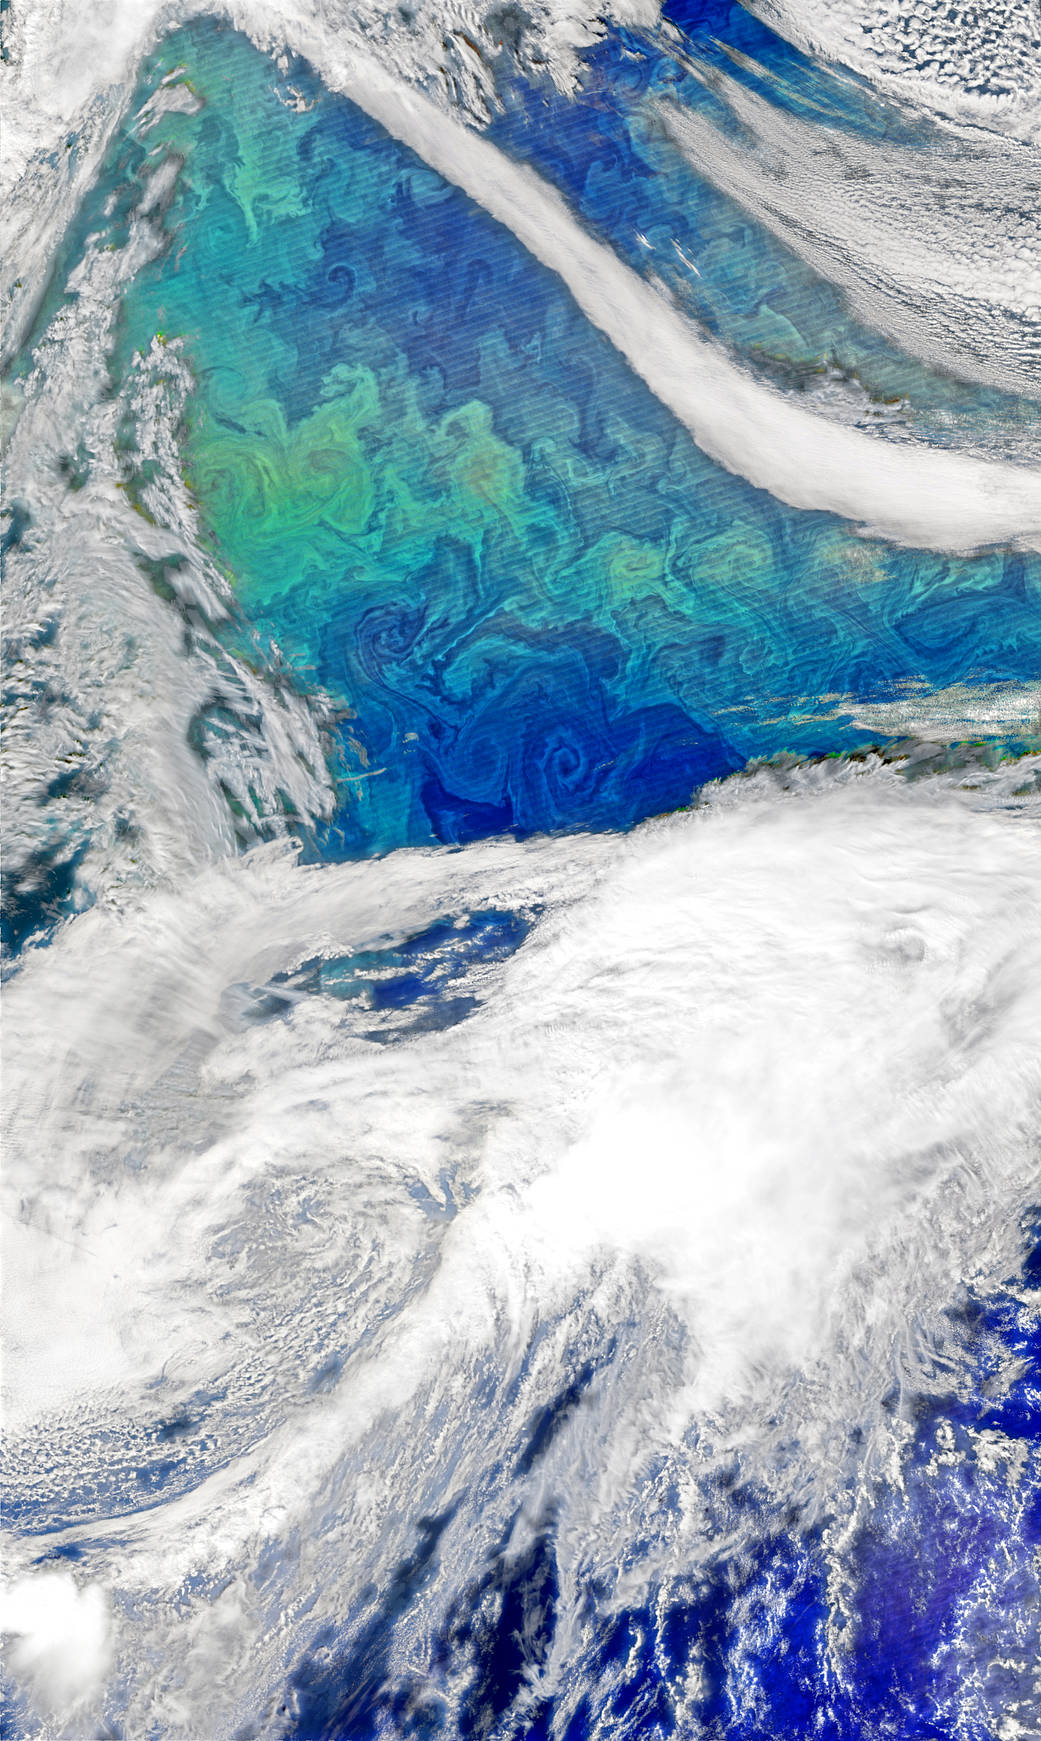 Bloom of phytoplankton in Atlantic imaged by satellite with clouds below and surrounding